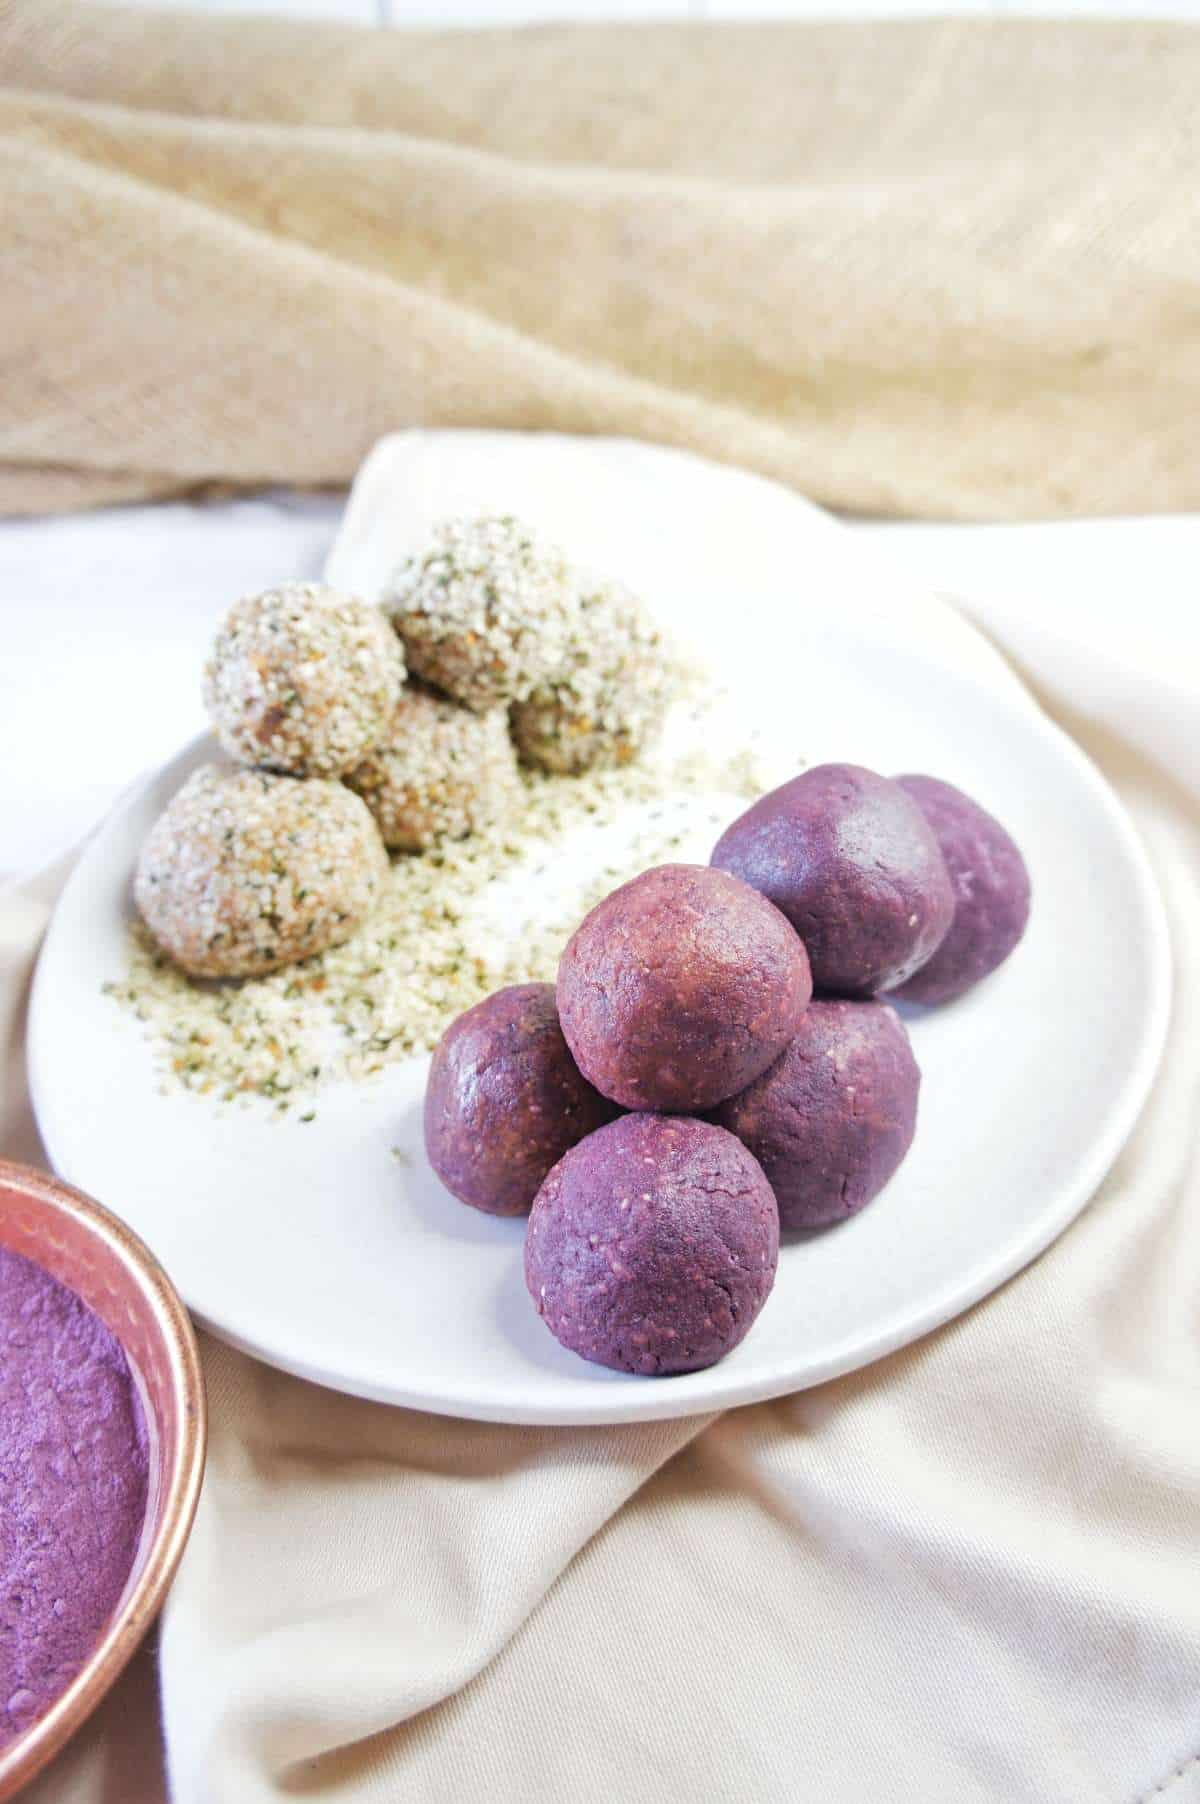 Acai and Hemp Balls 3 | Sweet Caramel Sunday